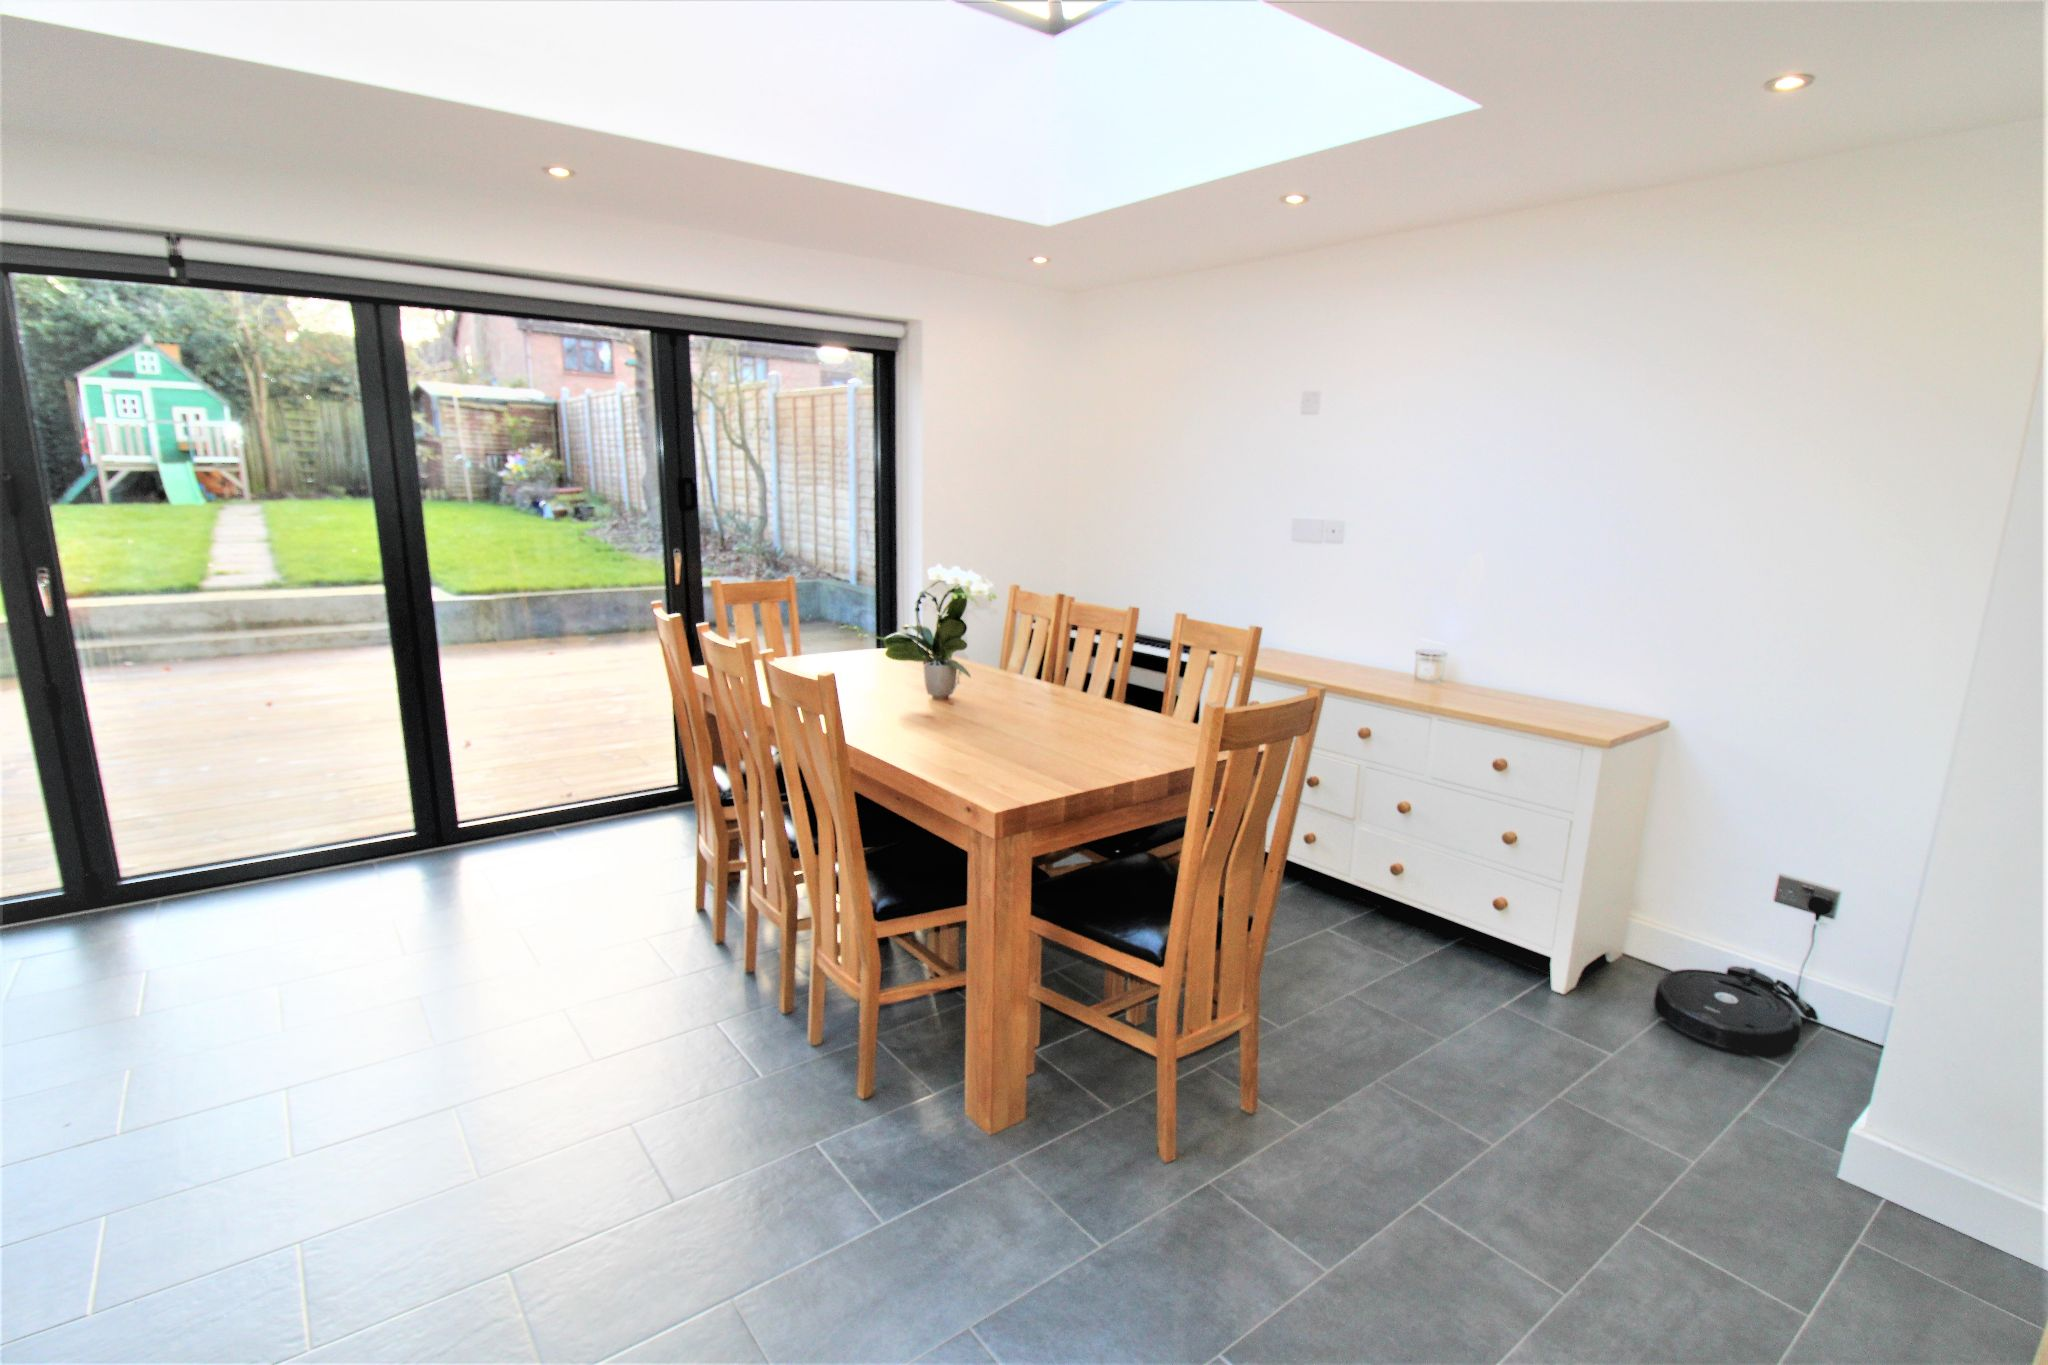 4 Bedroom Detached House For Sale - Dining Area